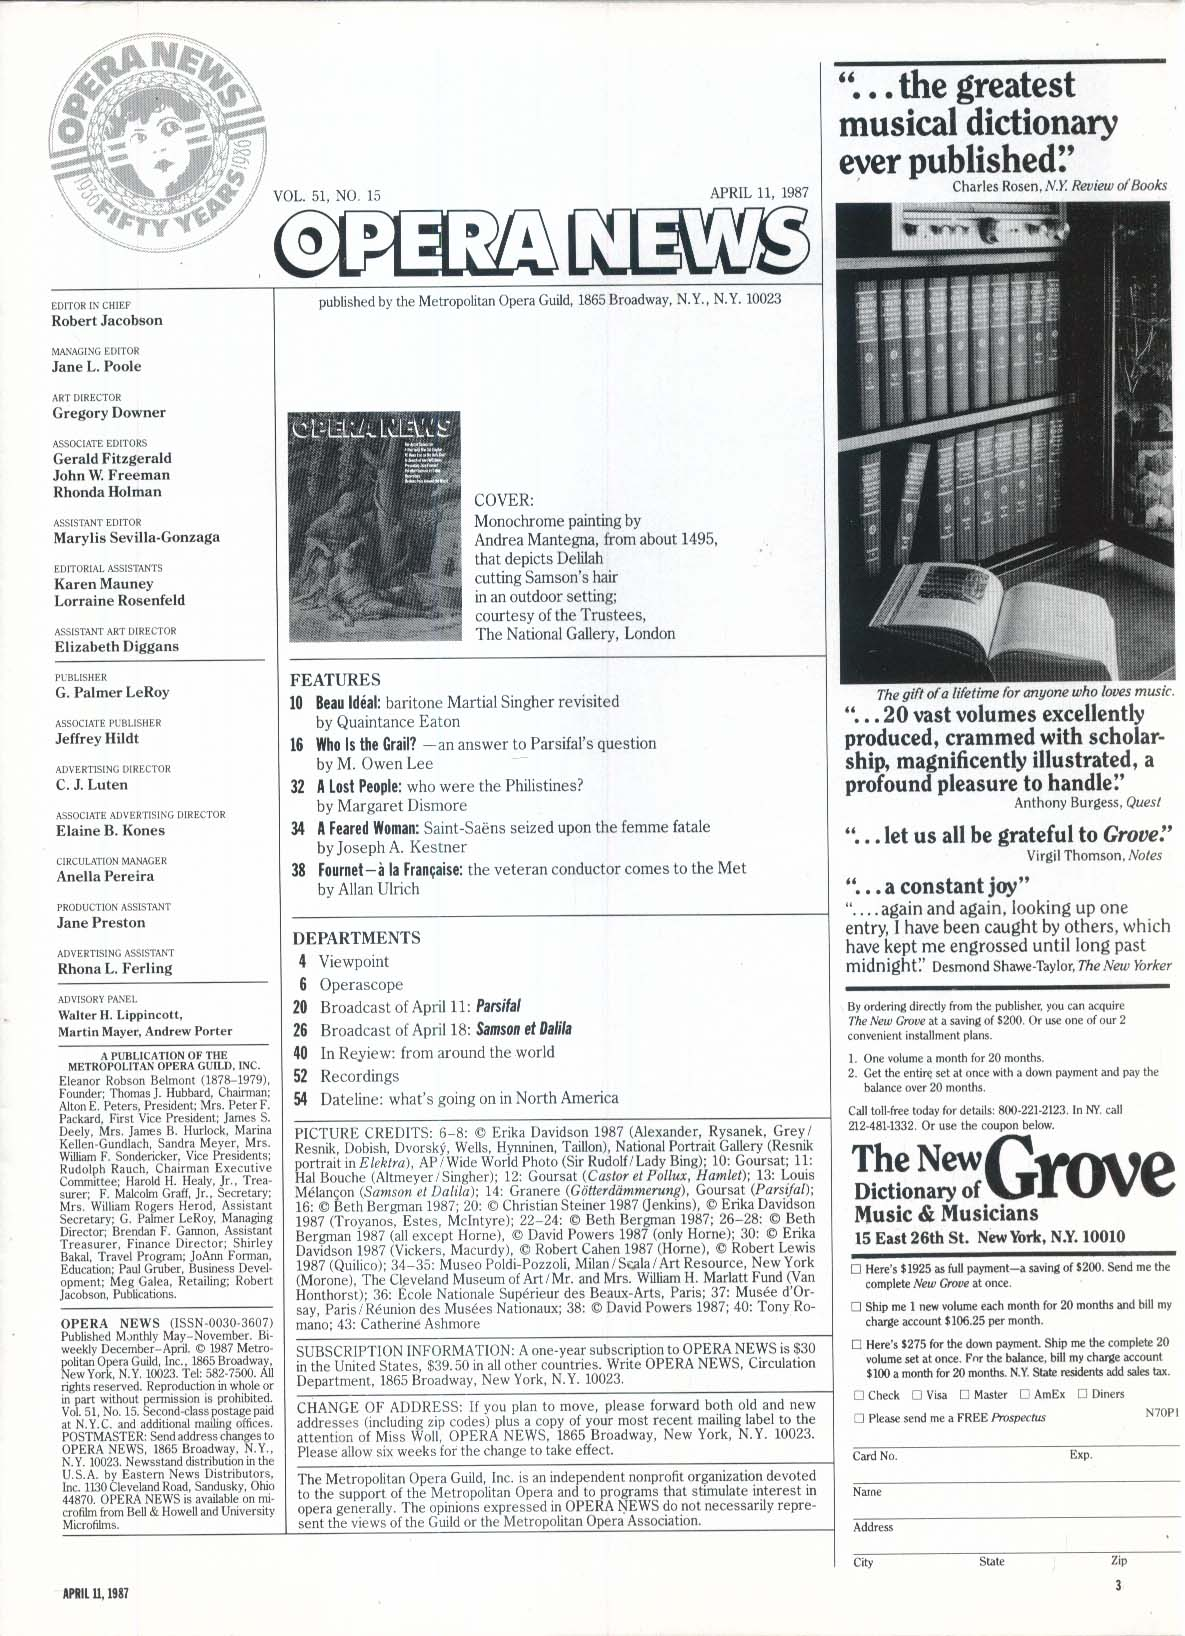 OPERA NEWS Martial Singher interview Jean Fournet Owen Lee 4/11 1987